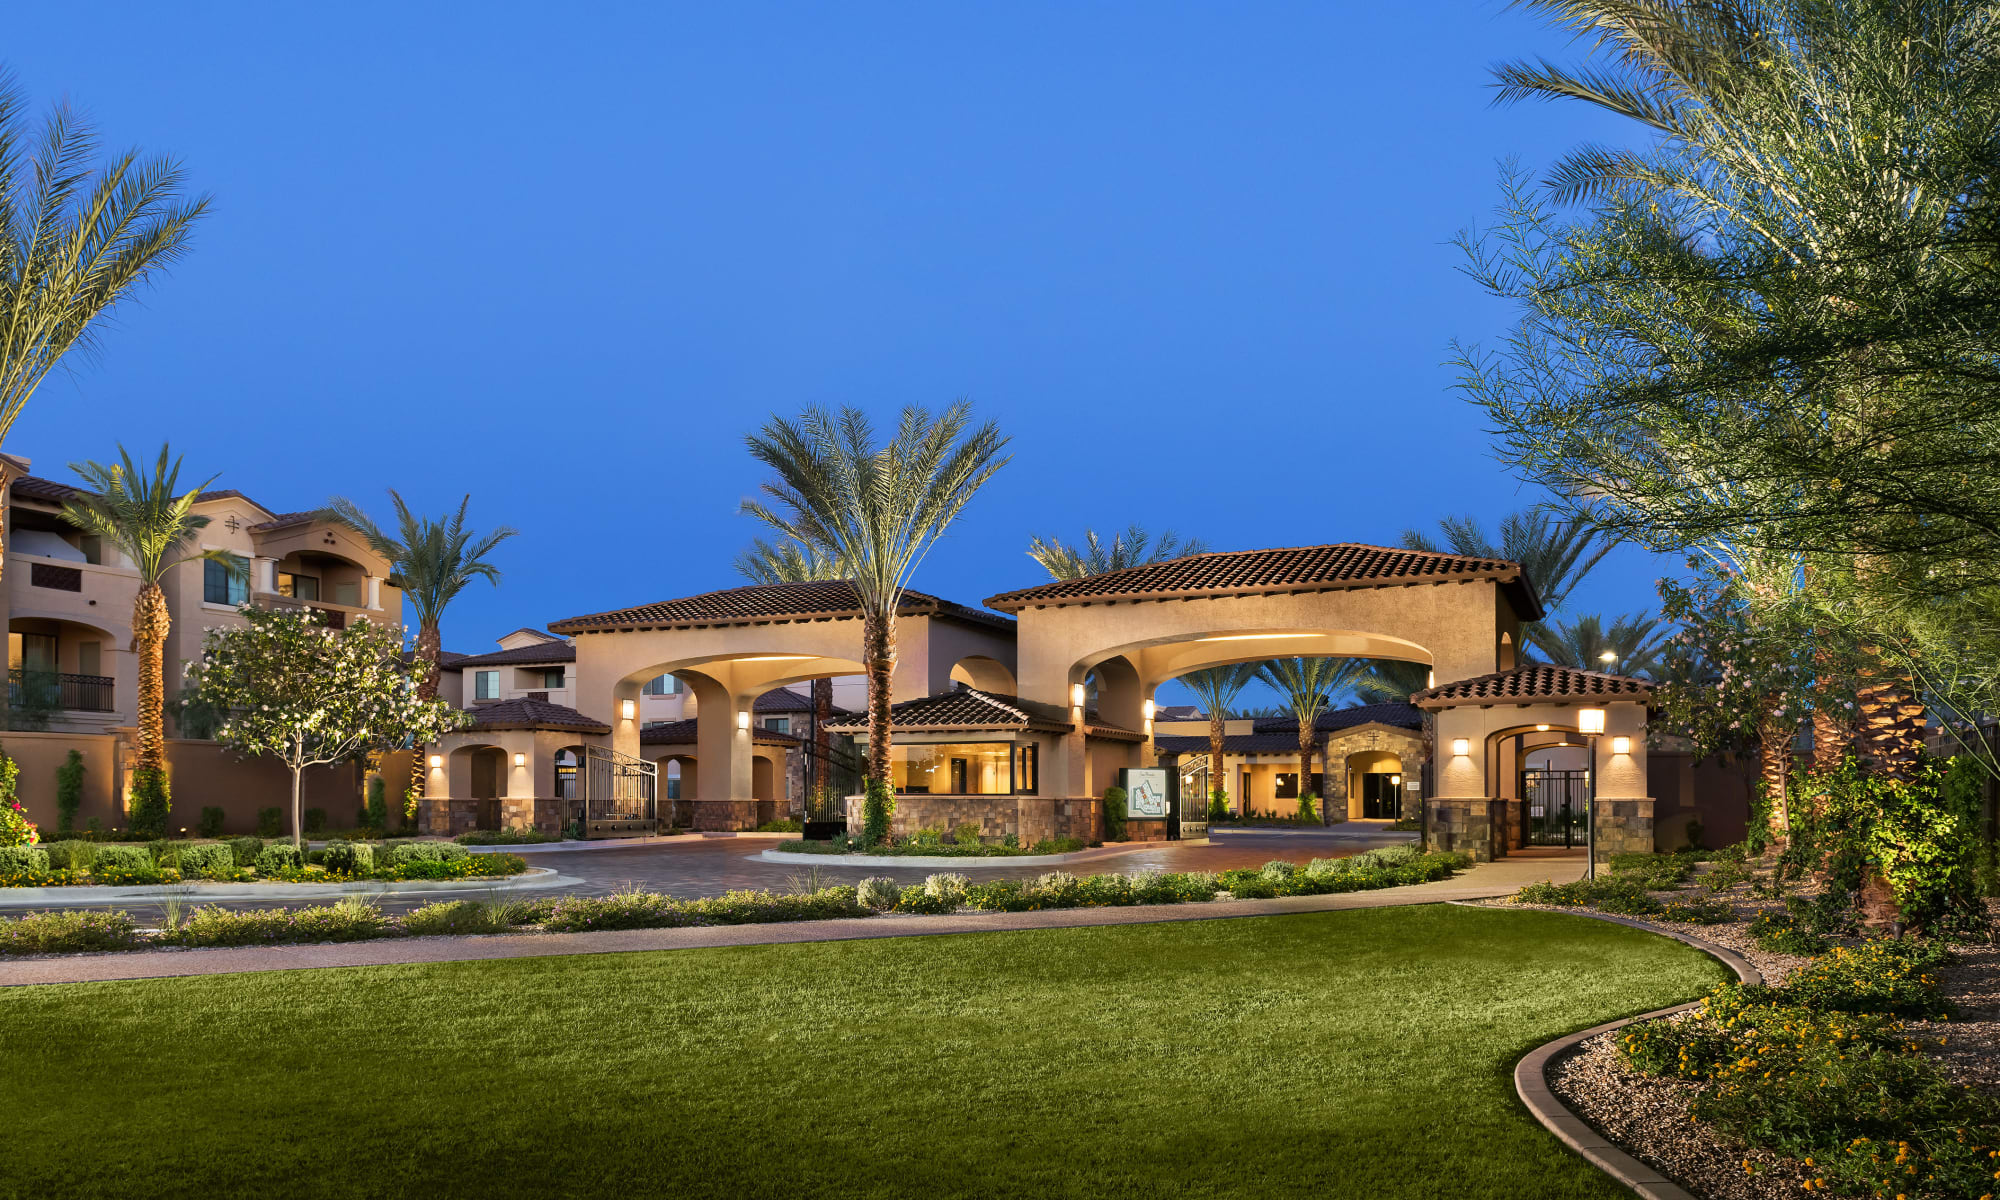 Apartments at San Portales in Scottsdale, Arizona